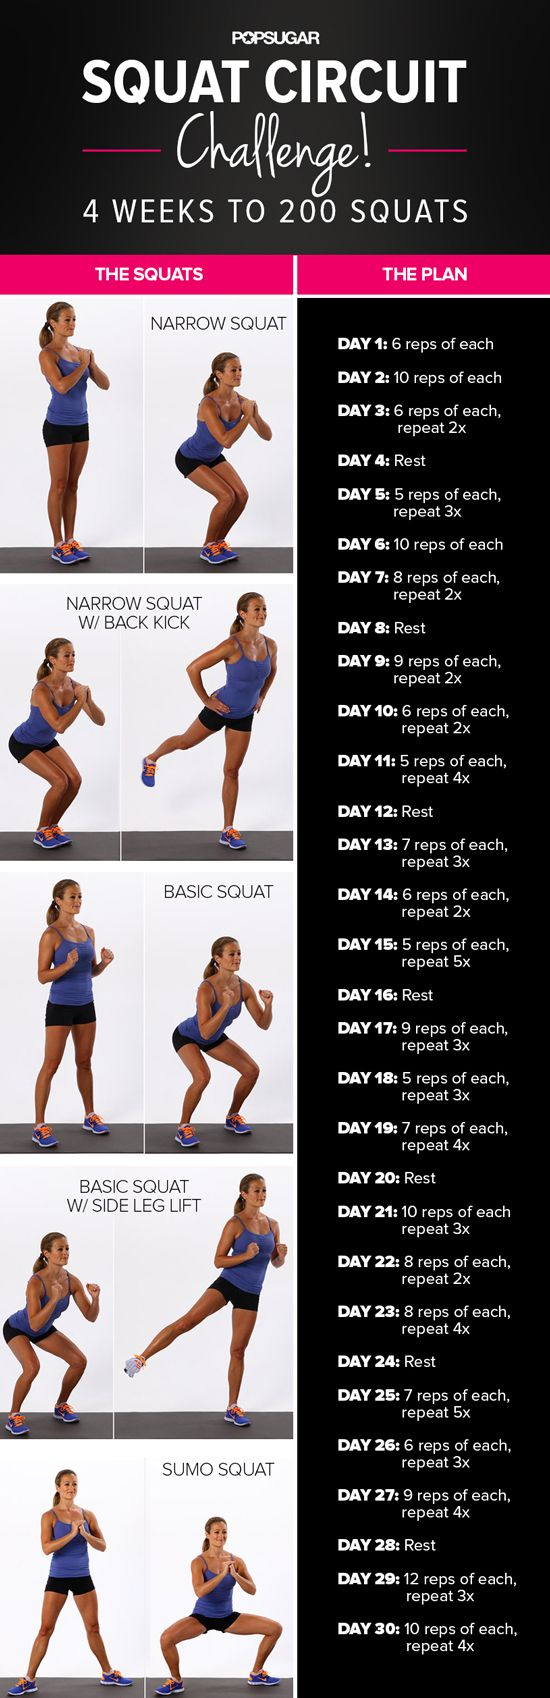 Give your legs some love with this 4-week squat challenge.